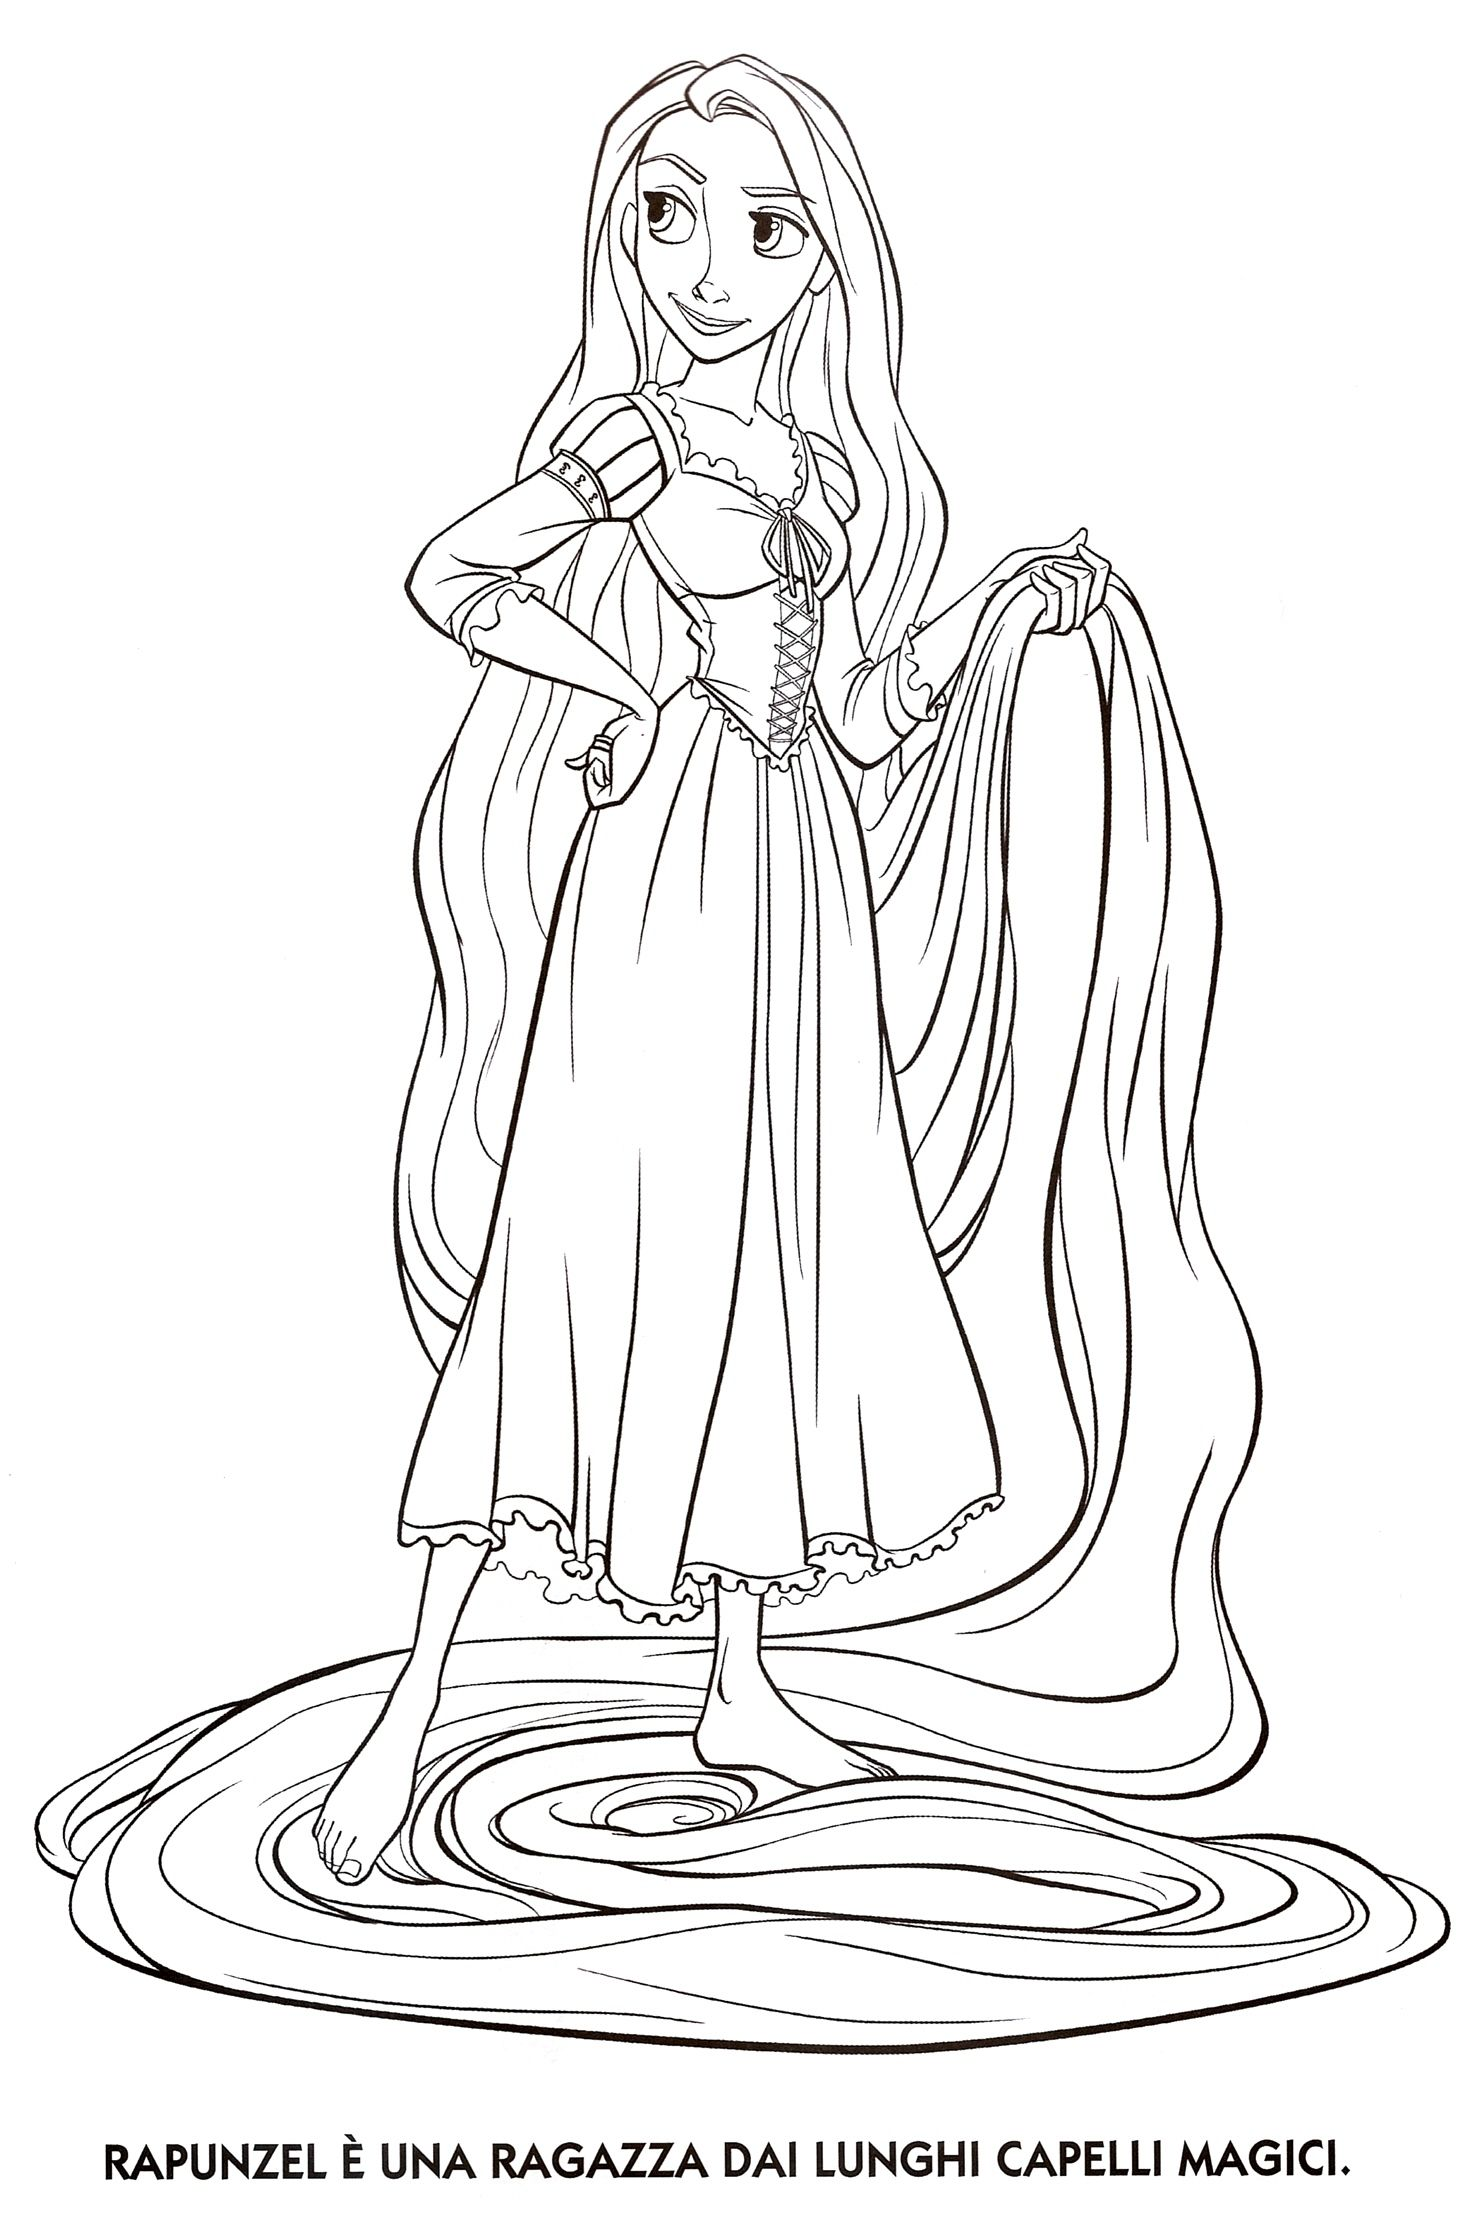 Rapunzel Coloring Page Easy For Kids